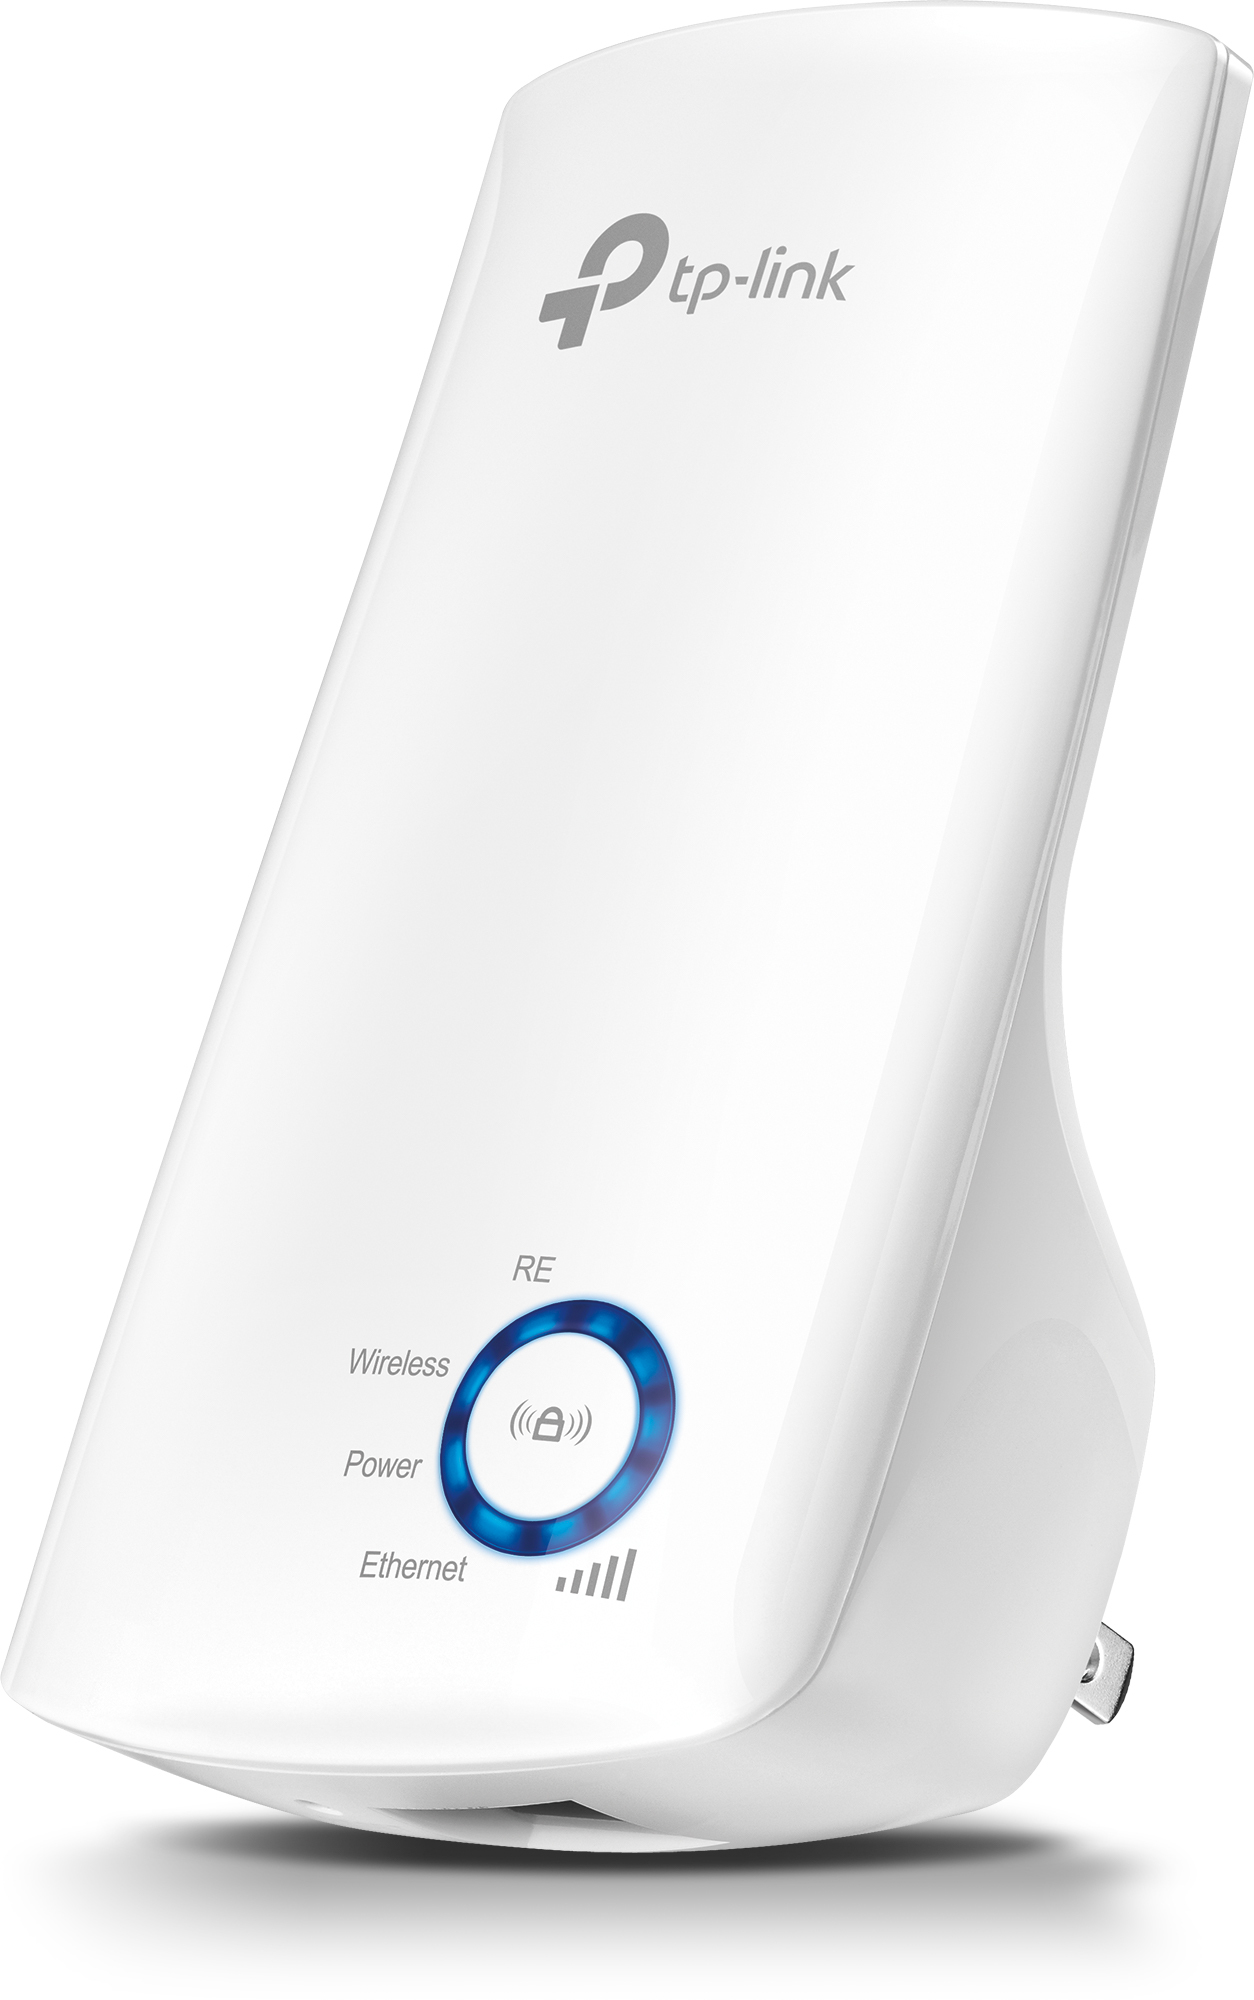 Tp Link Tl Wa850re Wi Fi Range Extender 10mb Lan 100mb 80211b Wr940n 300mbps Wireless N Router 3 Antenna Right Side Press Enter To Zoom In And Out